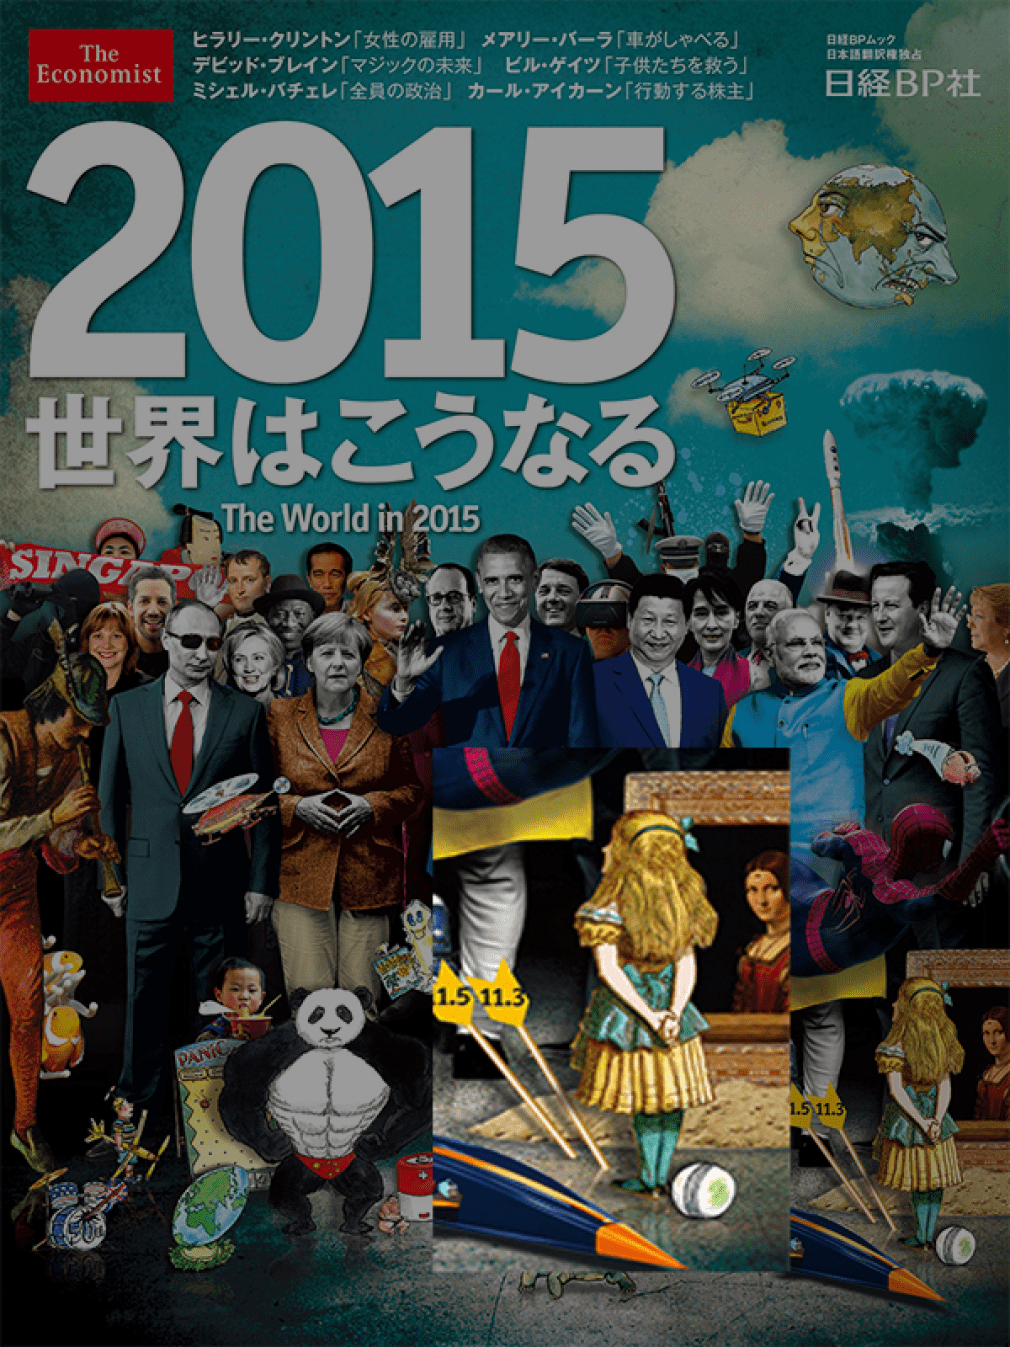 The Economist, owned by the Rothschilds, offers cryptic plans for 2015. Note the Alice in Wonderland Illuminati reference. Alice in Wonderland is a reference to mind control.